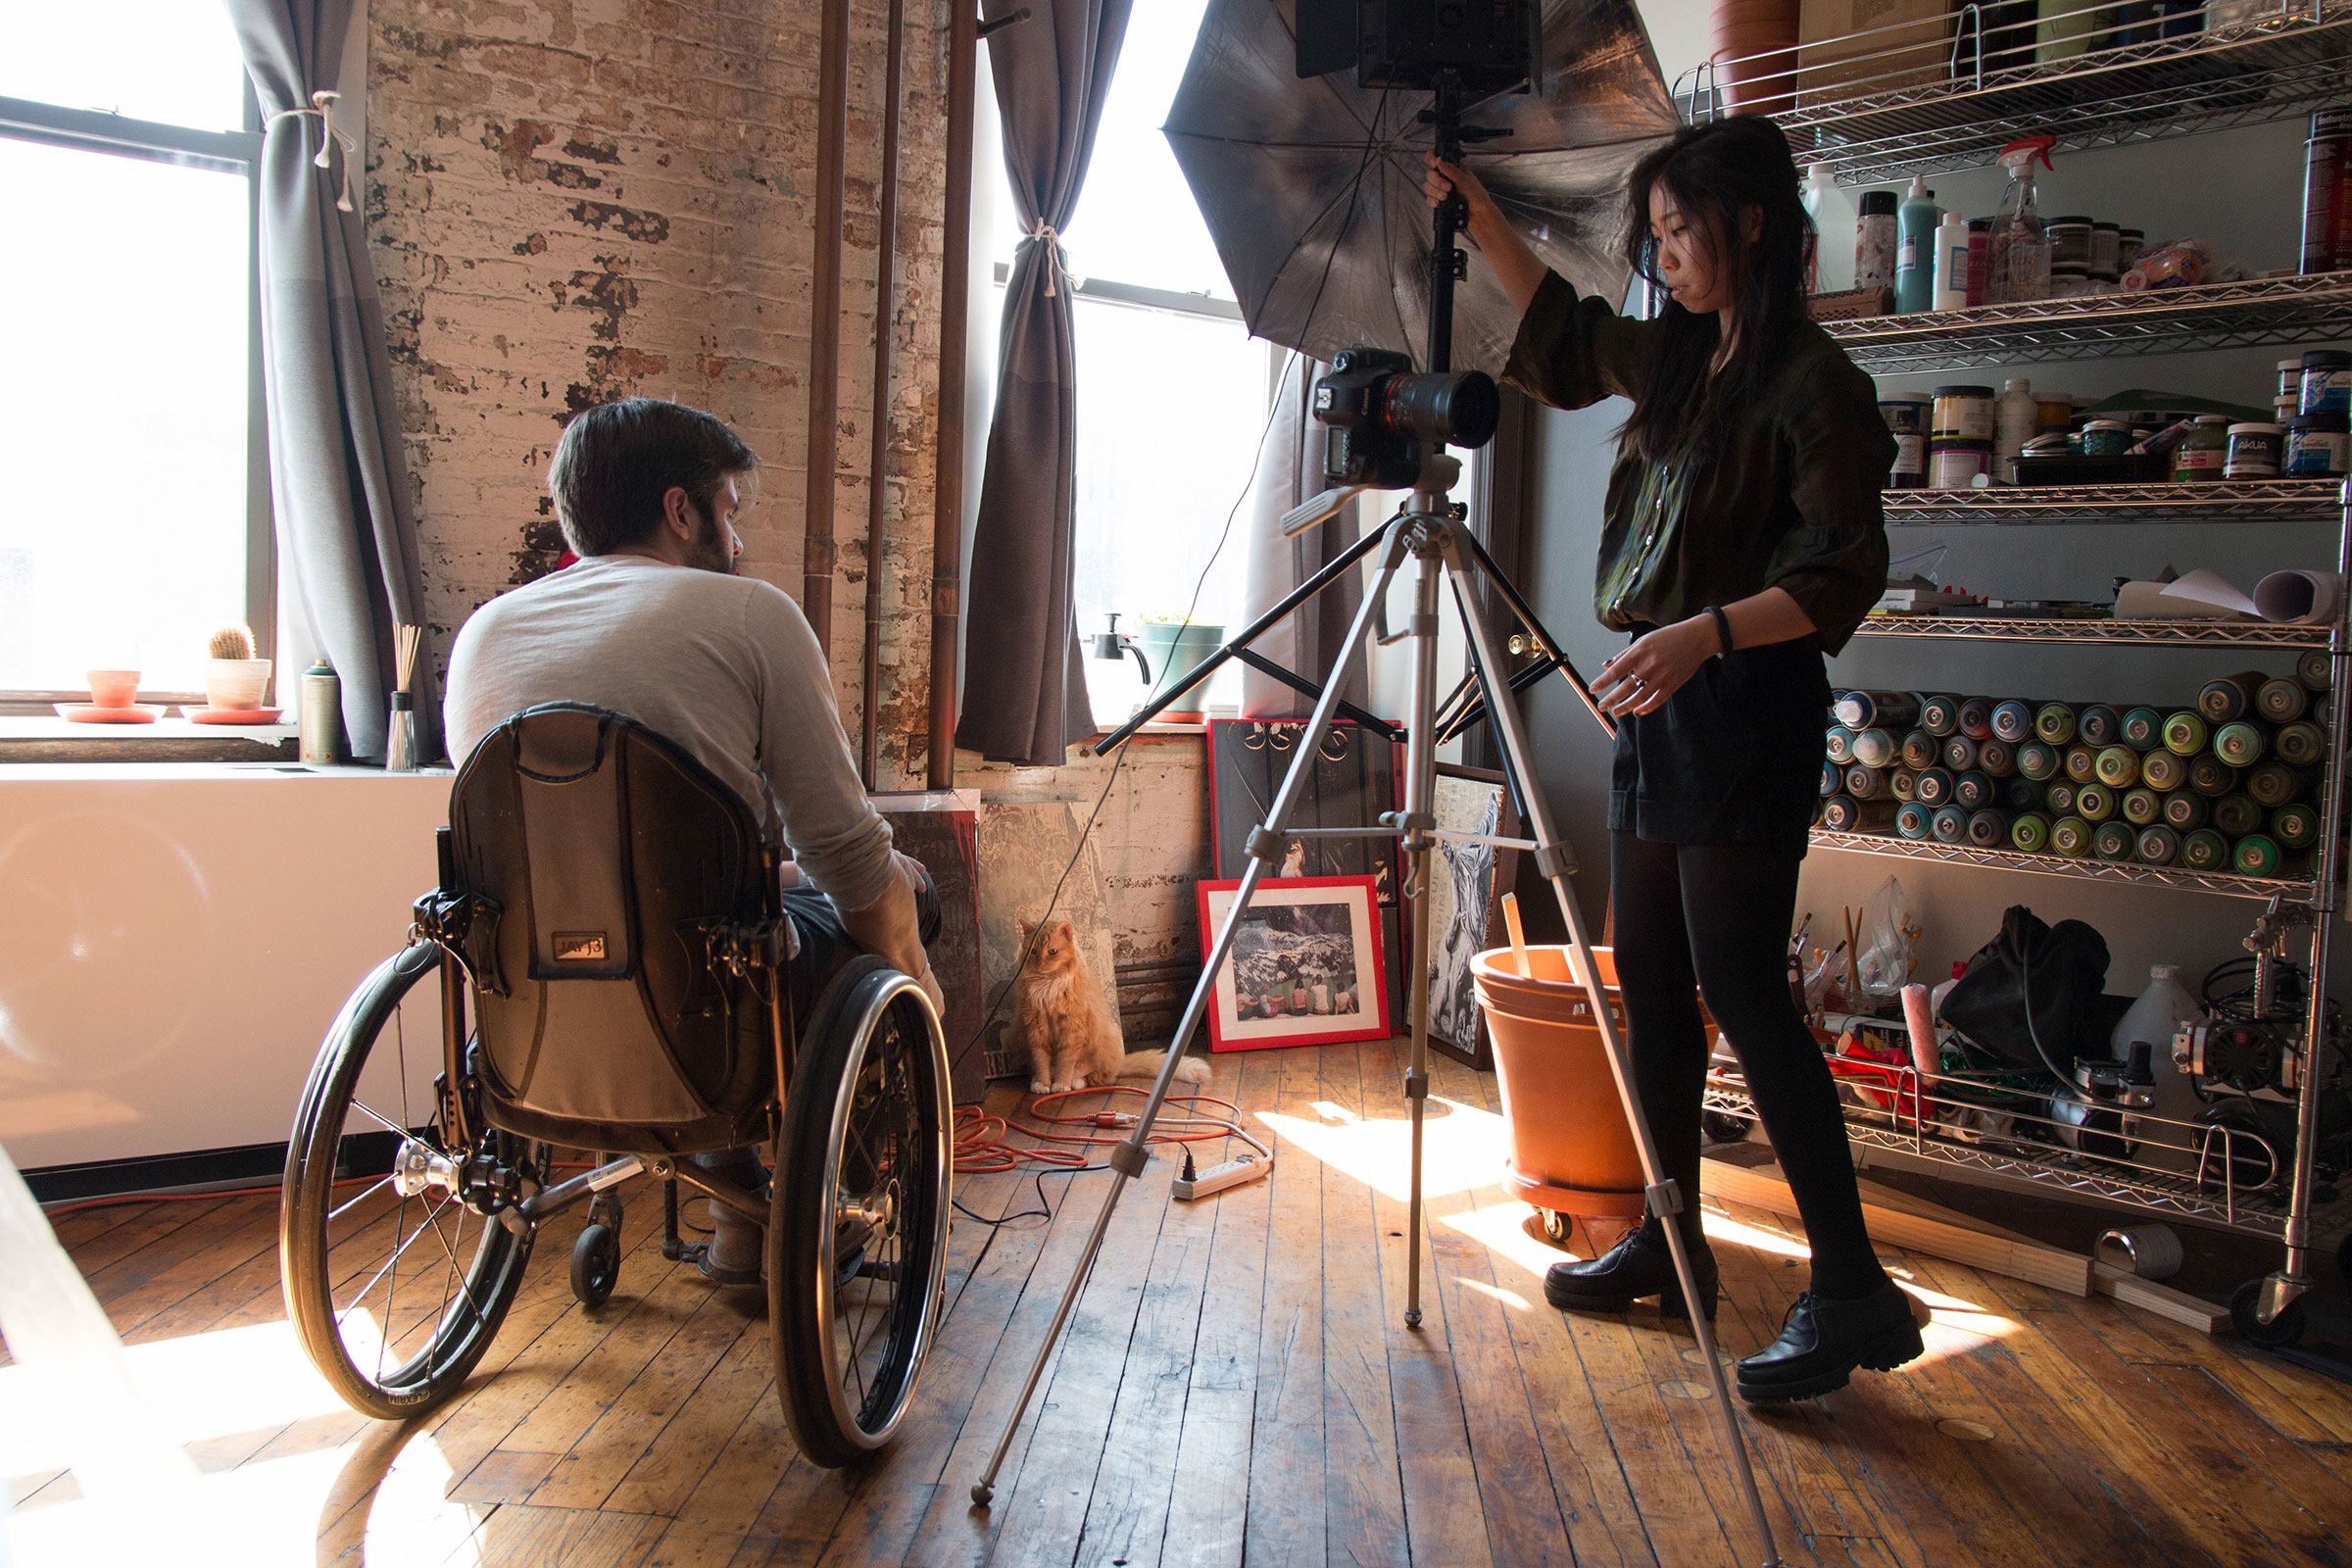 Filmmaker Chloe Lee modeled for many of B.D. White's stencils and paintings. She helps White take photographs of the work at his studio.